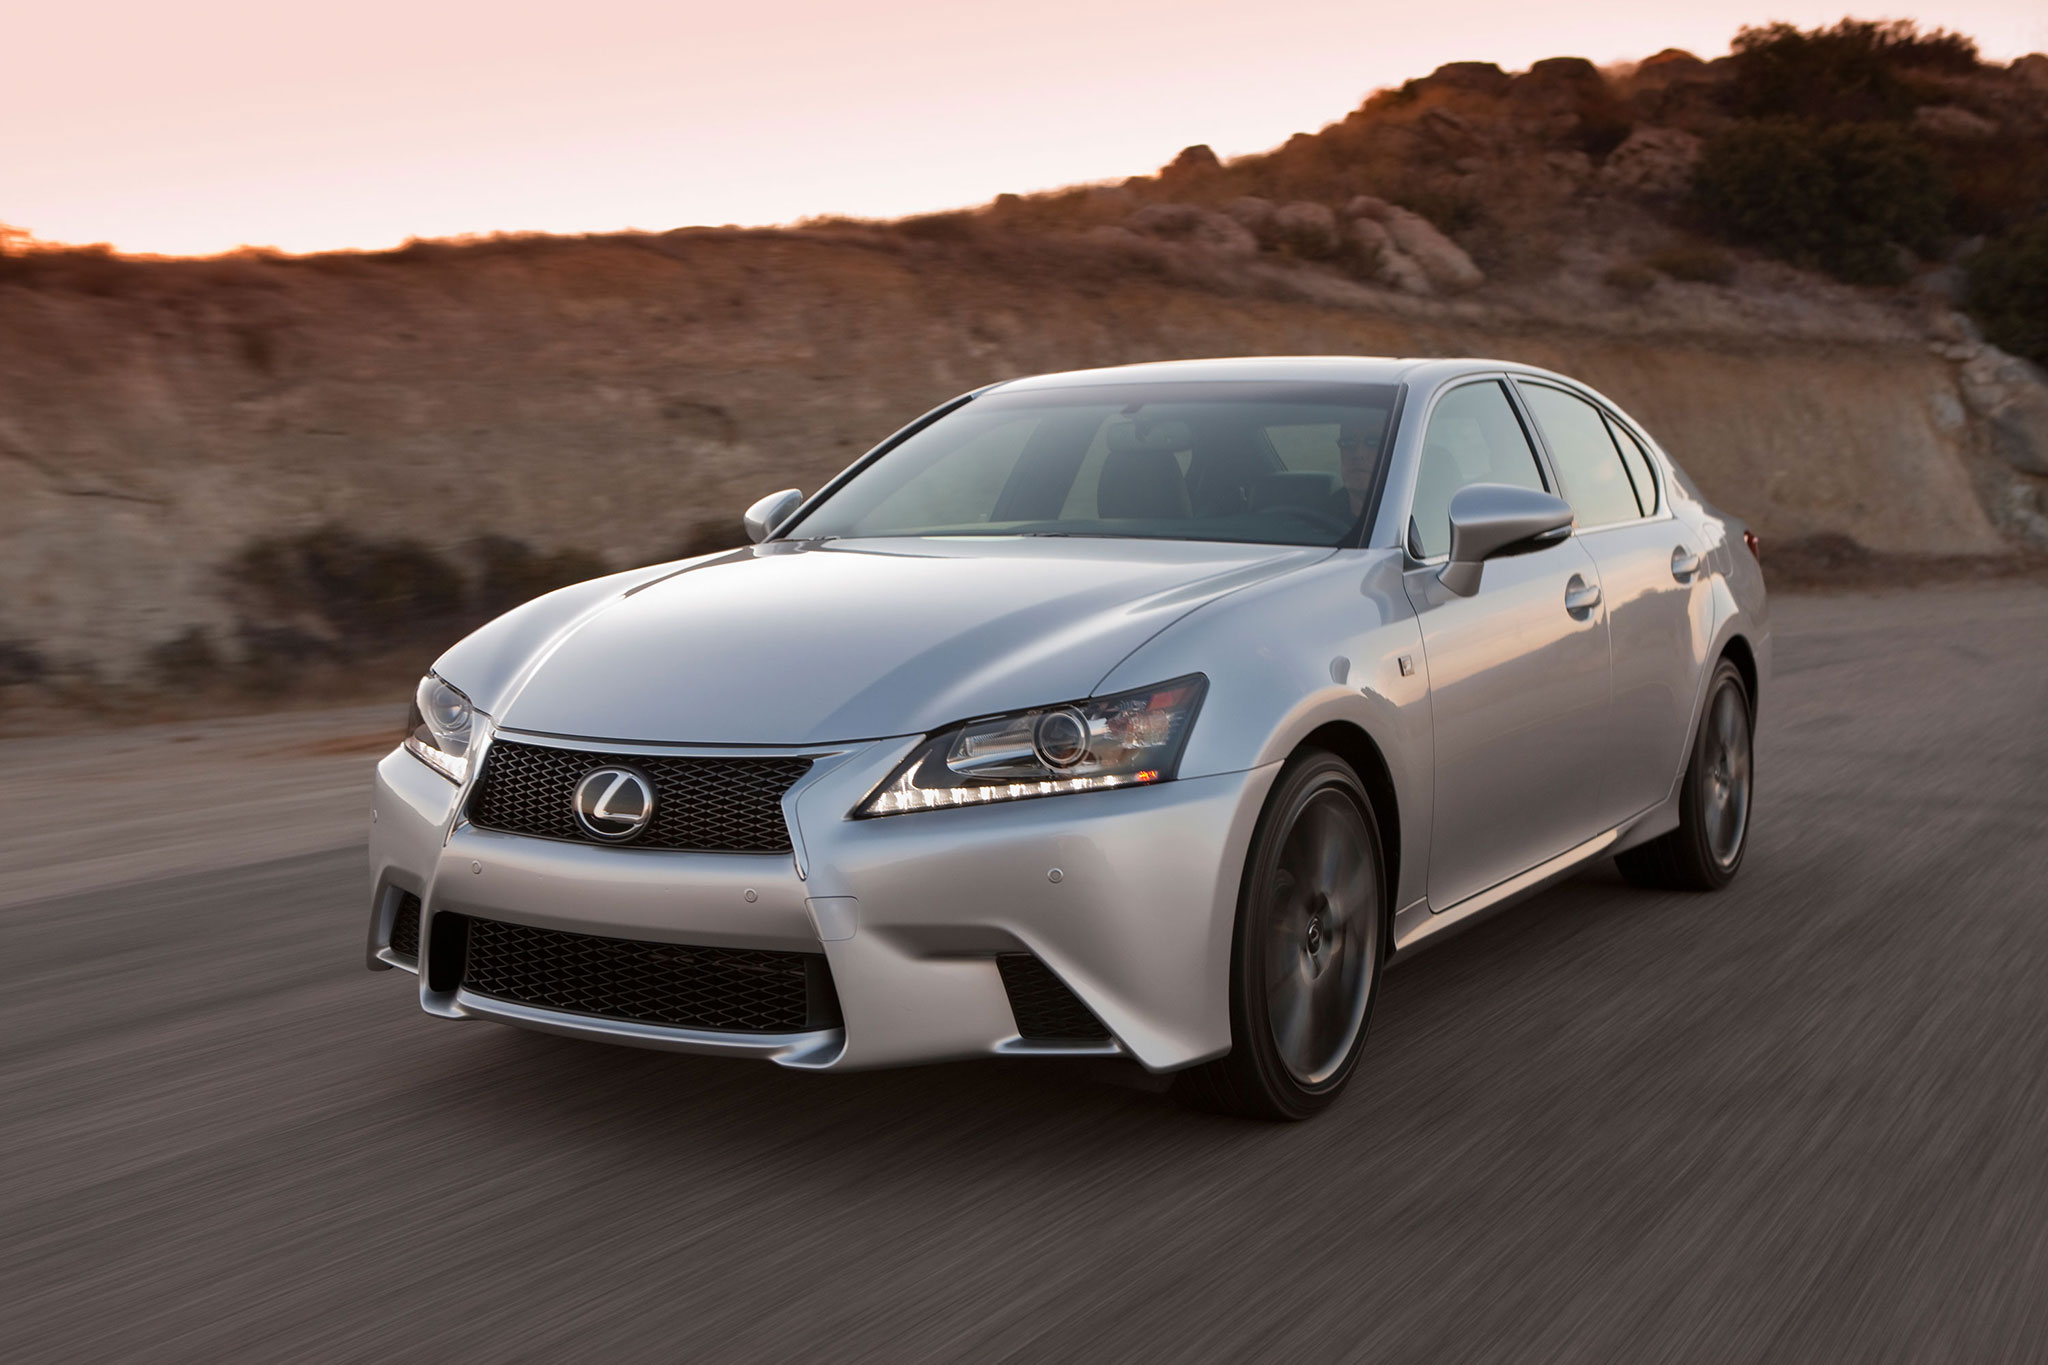 Awesome 2013 Lexus GS 350 F Sport